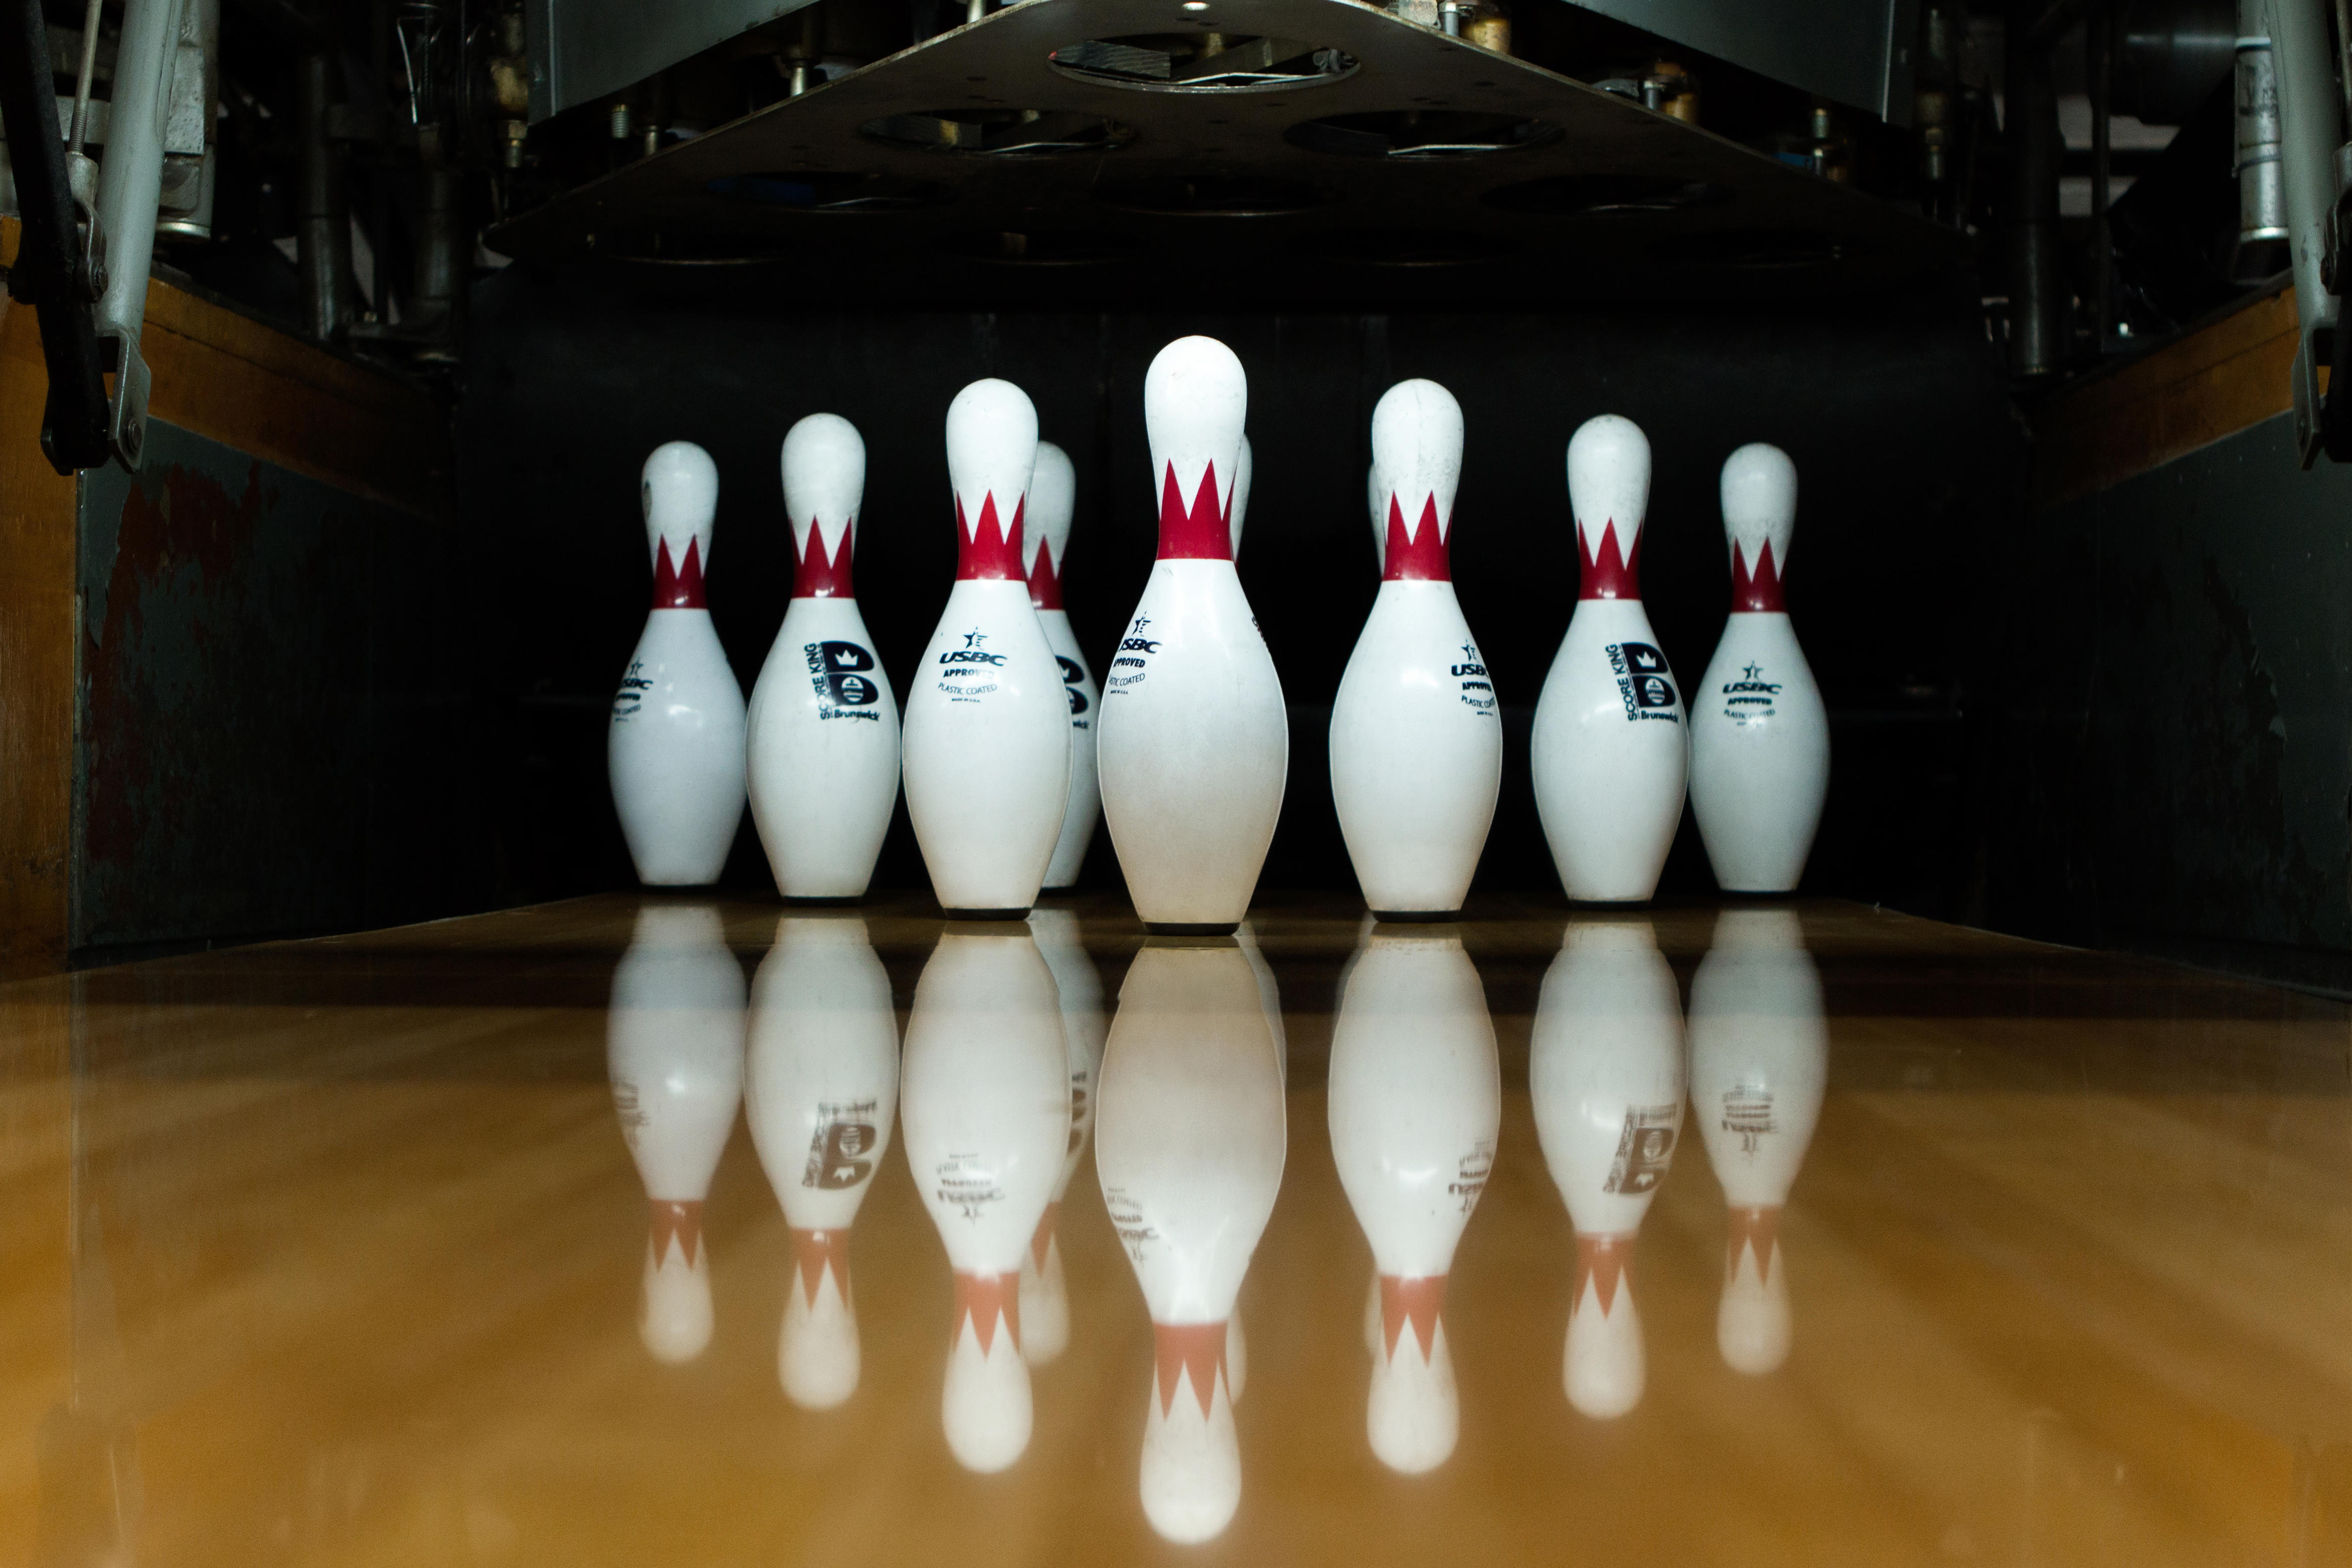 Bowling pins on a lane